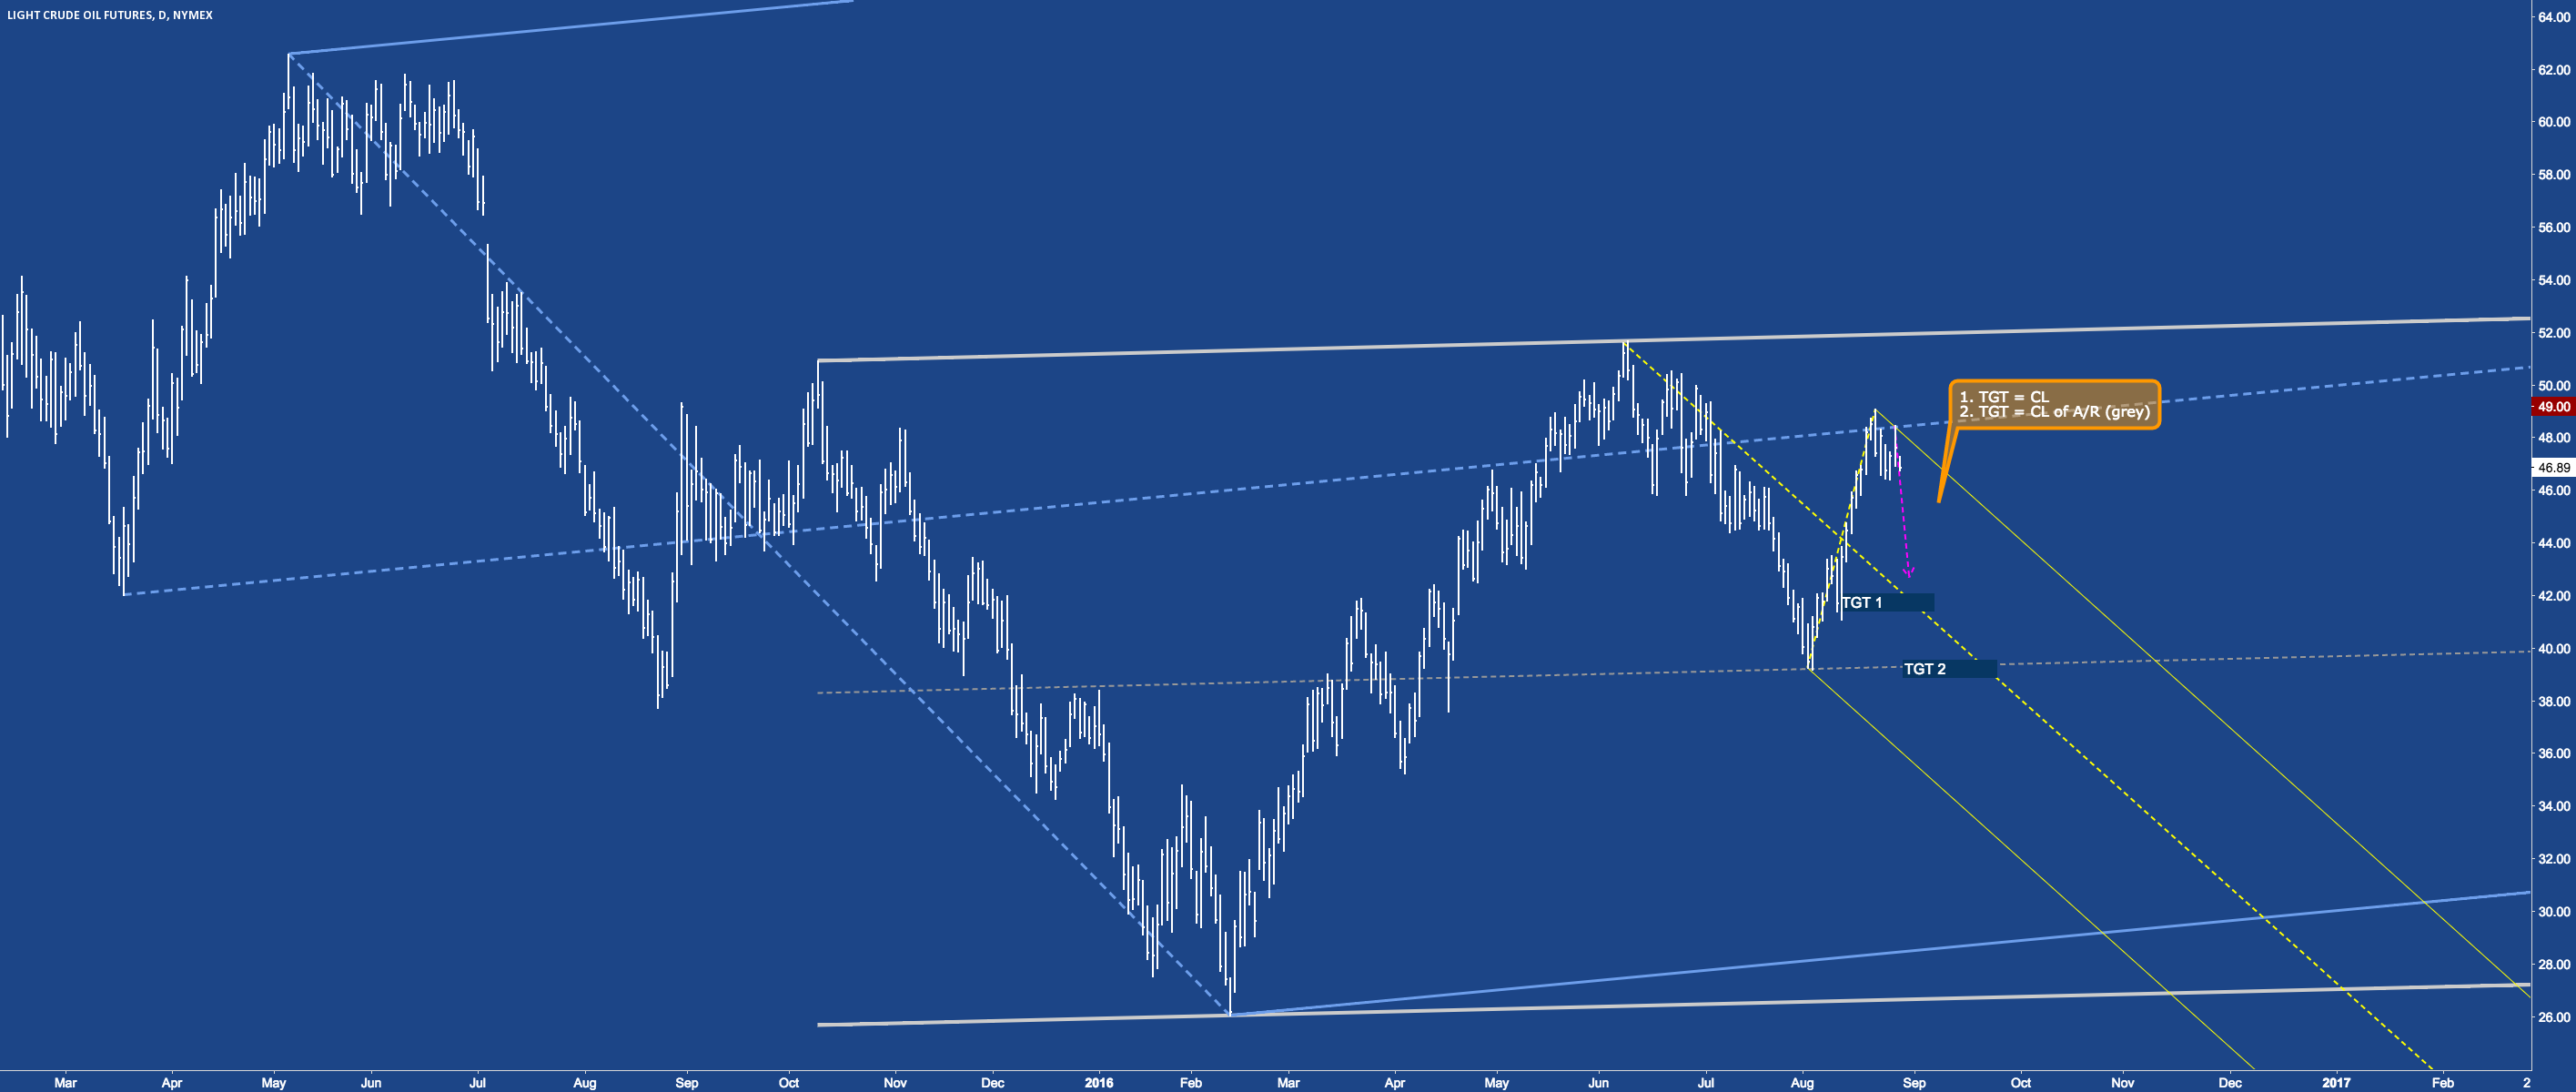 CL - Crude Oil on it's way to south